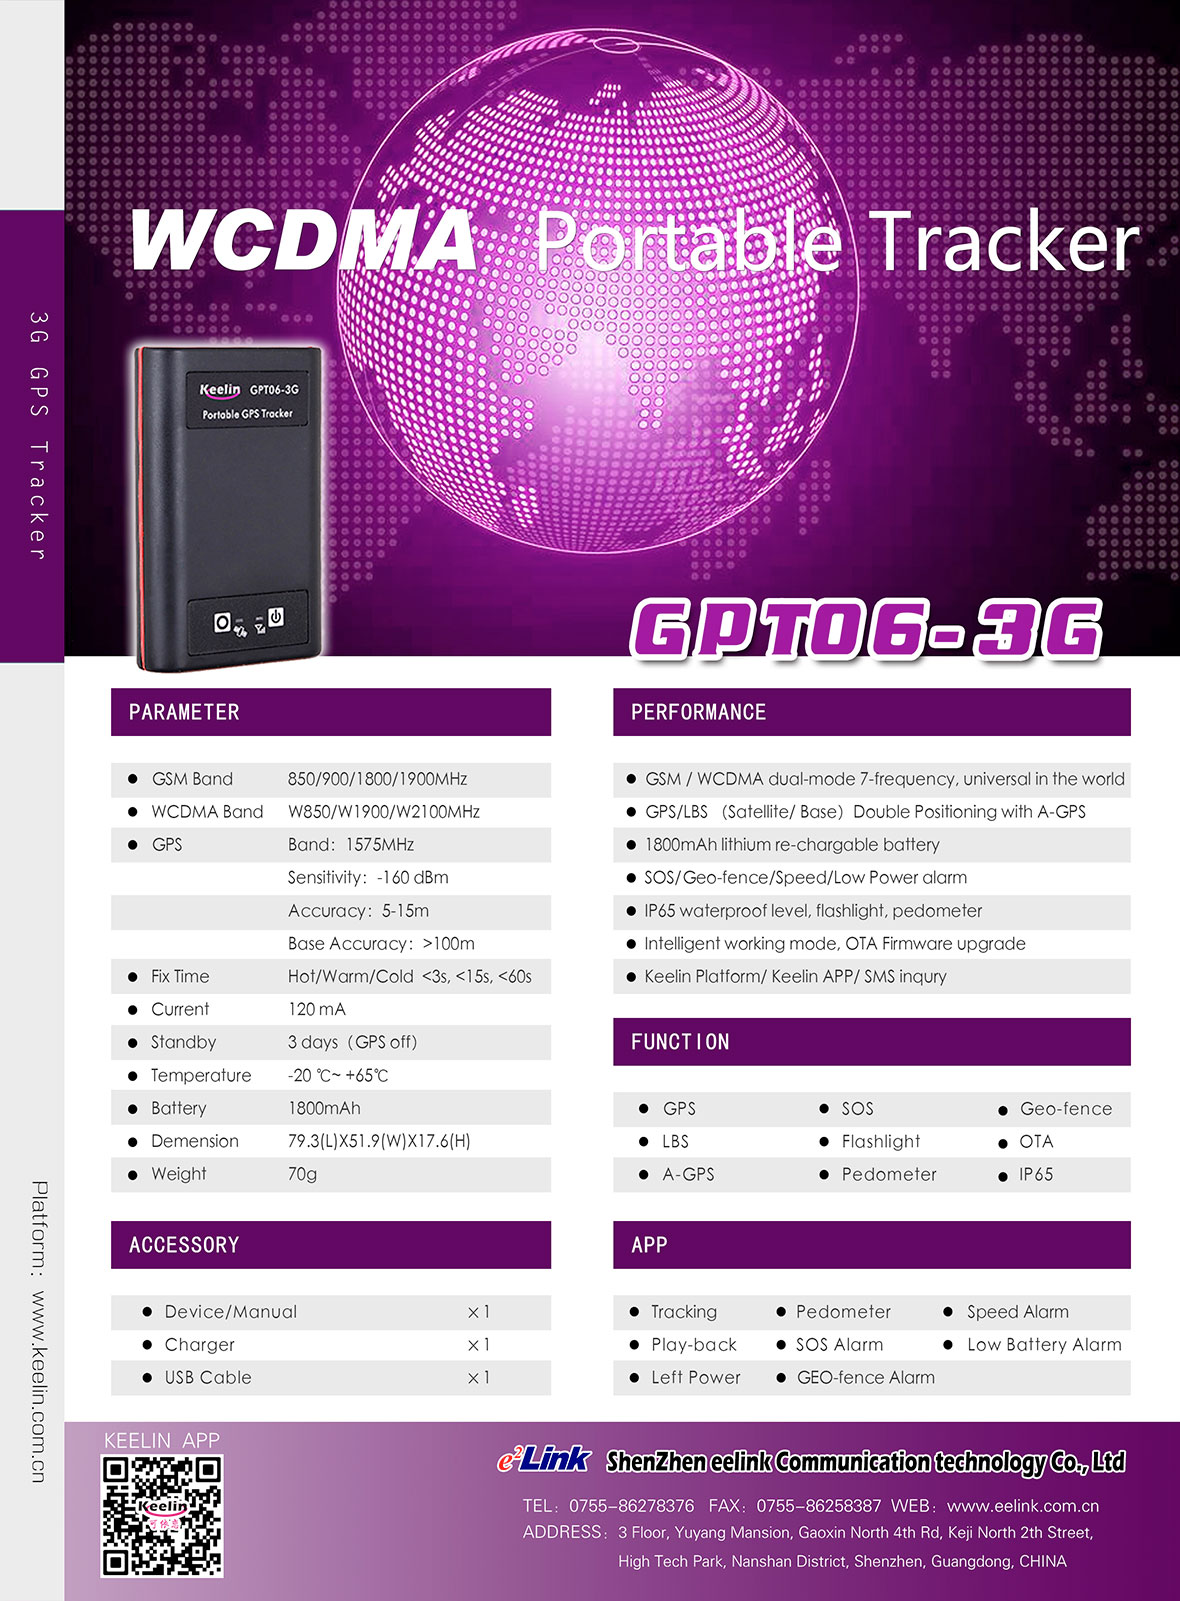 3G GPS Tracker GPT06-3G Specification